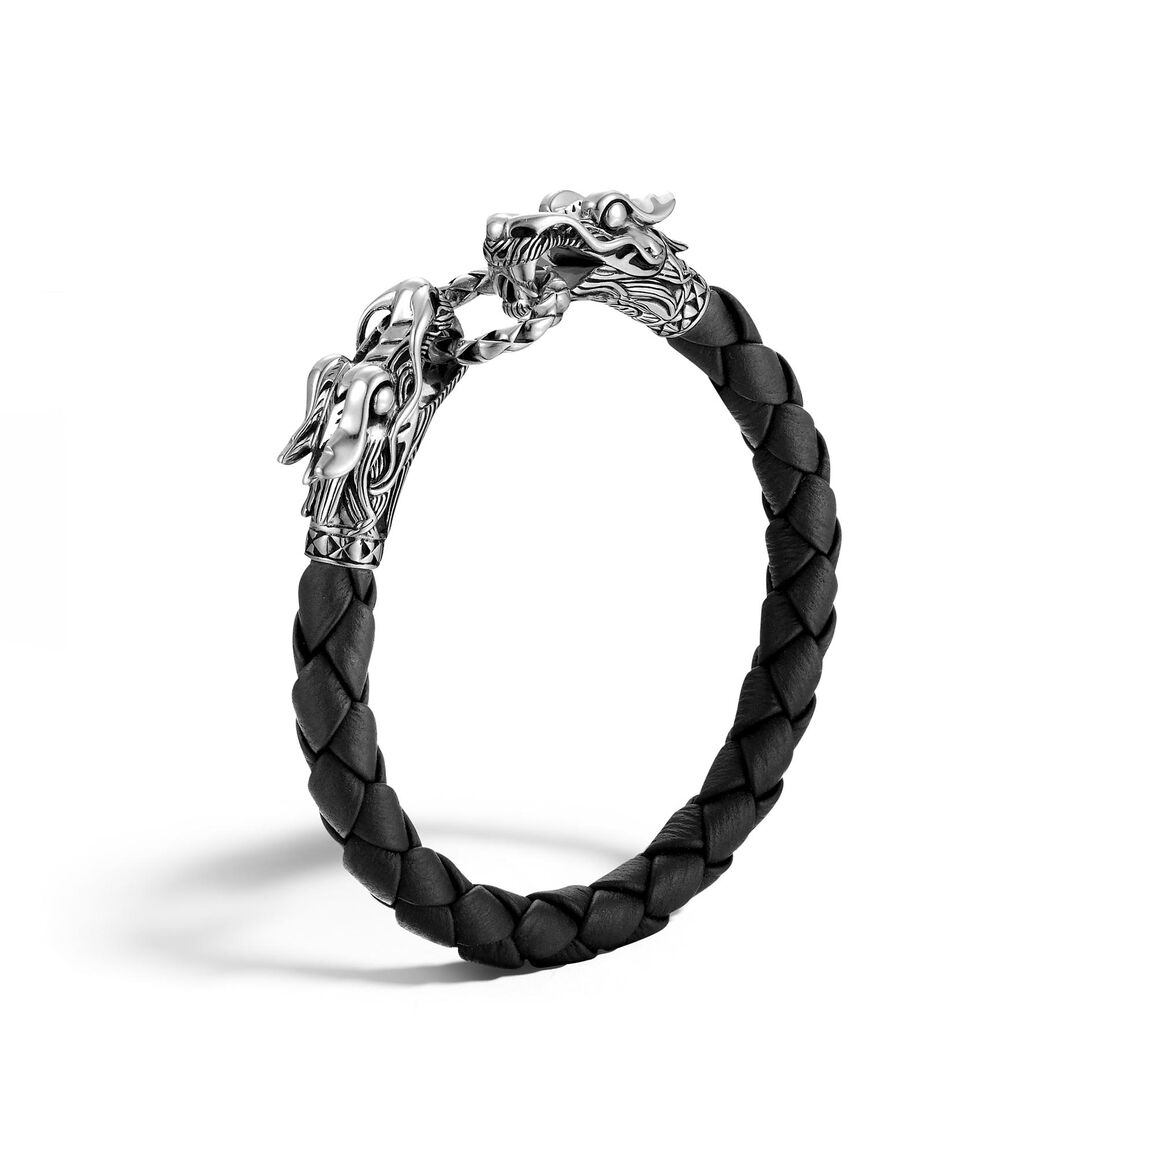 Legends Naga 8MM Double Head Bracelet in Silver and Leather